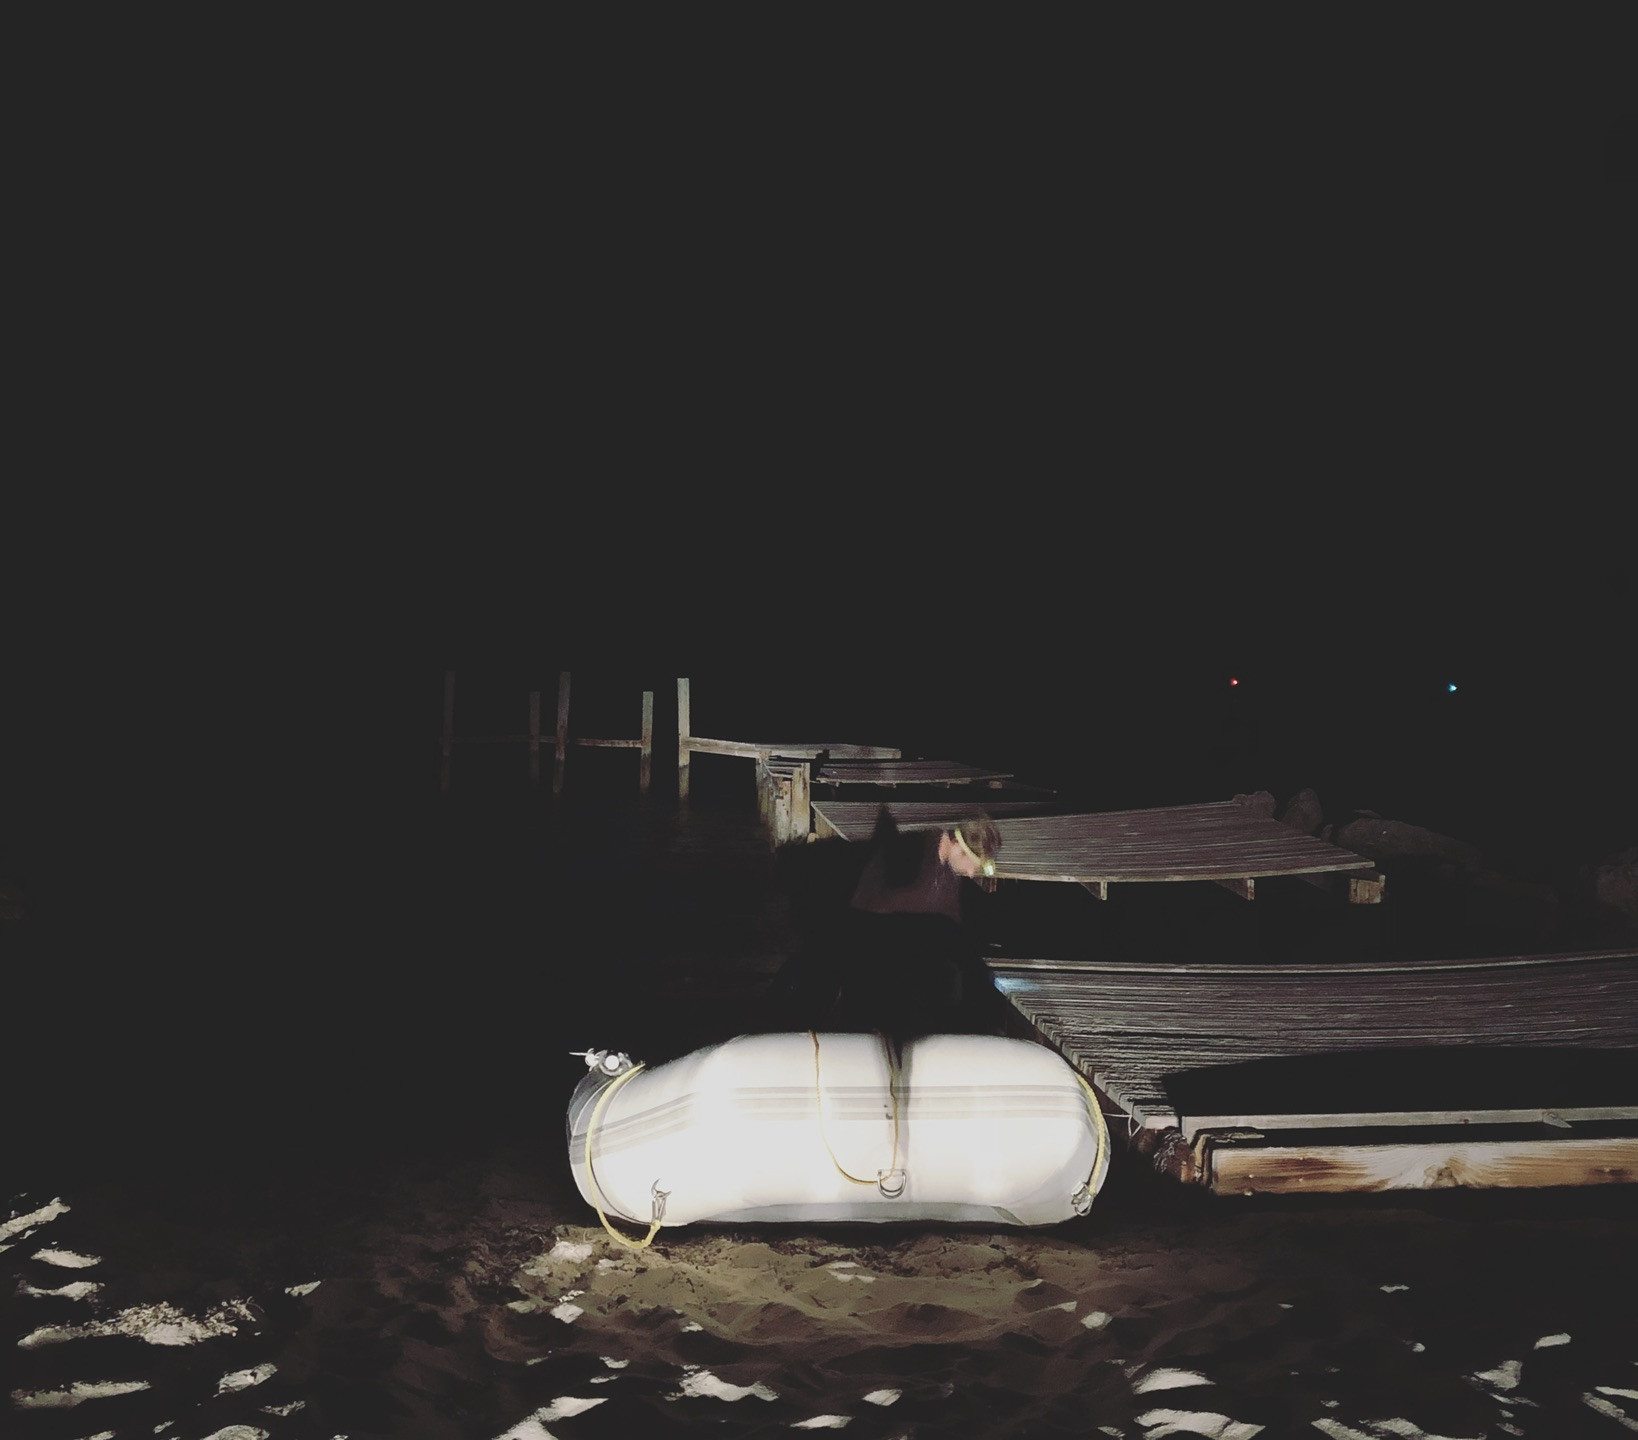 A  glimpse of our desolate dinghy and the messy dock